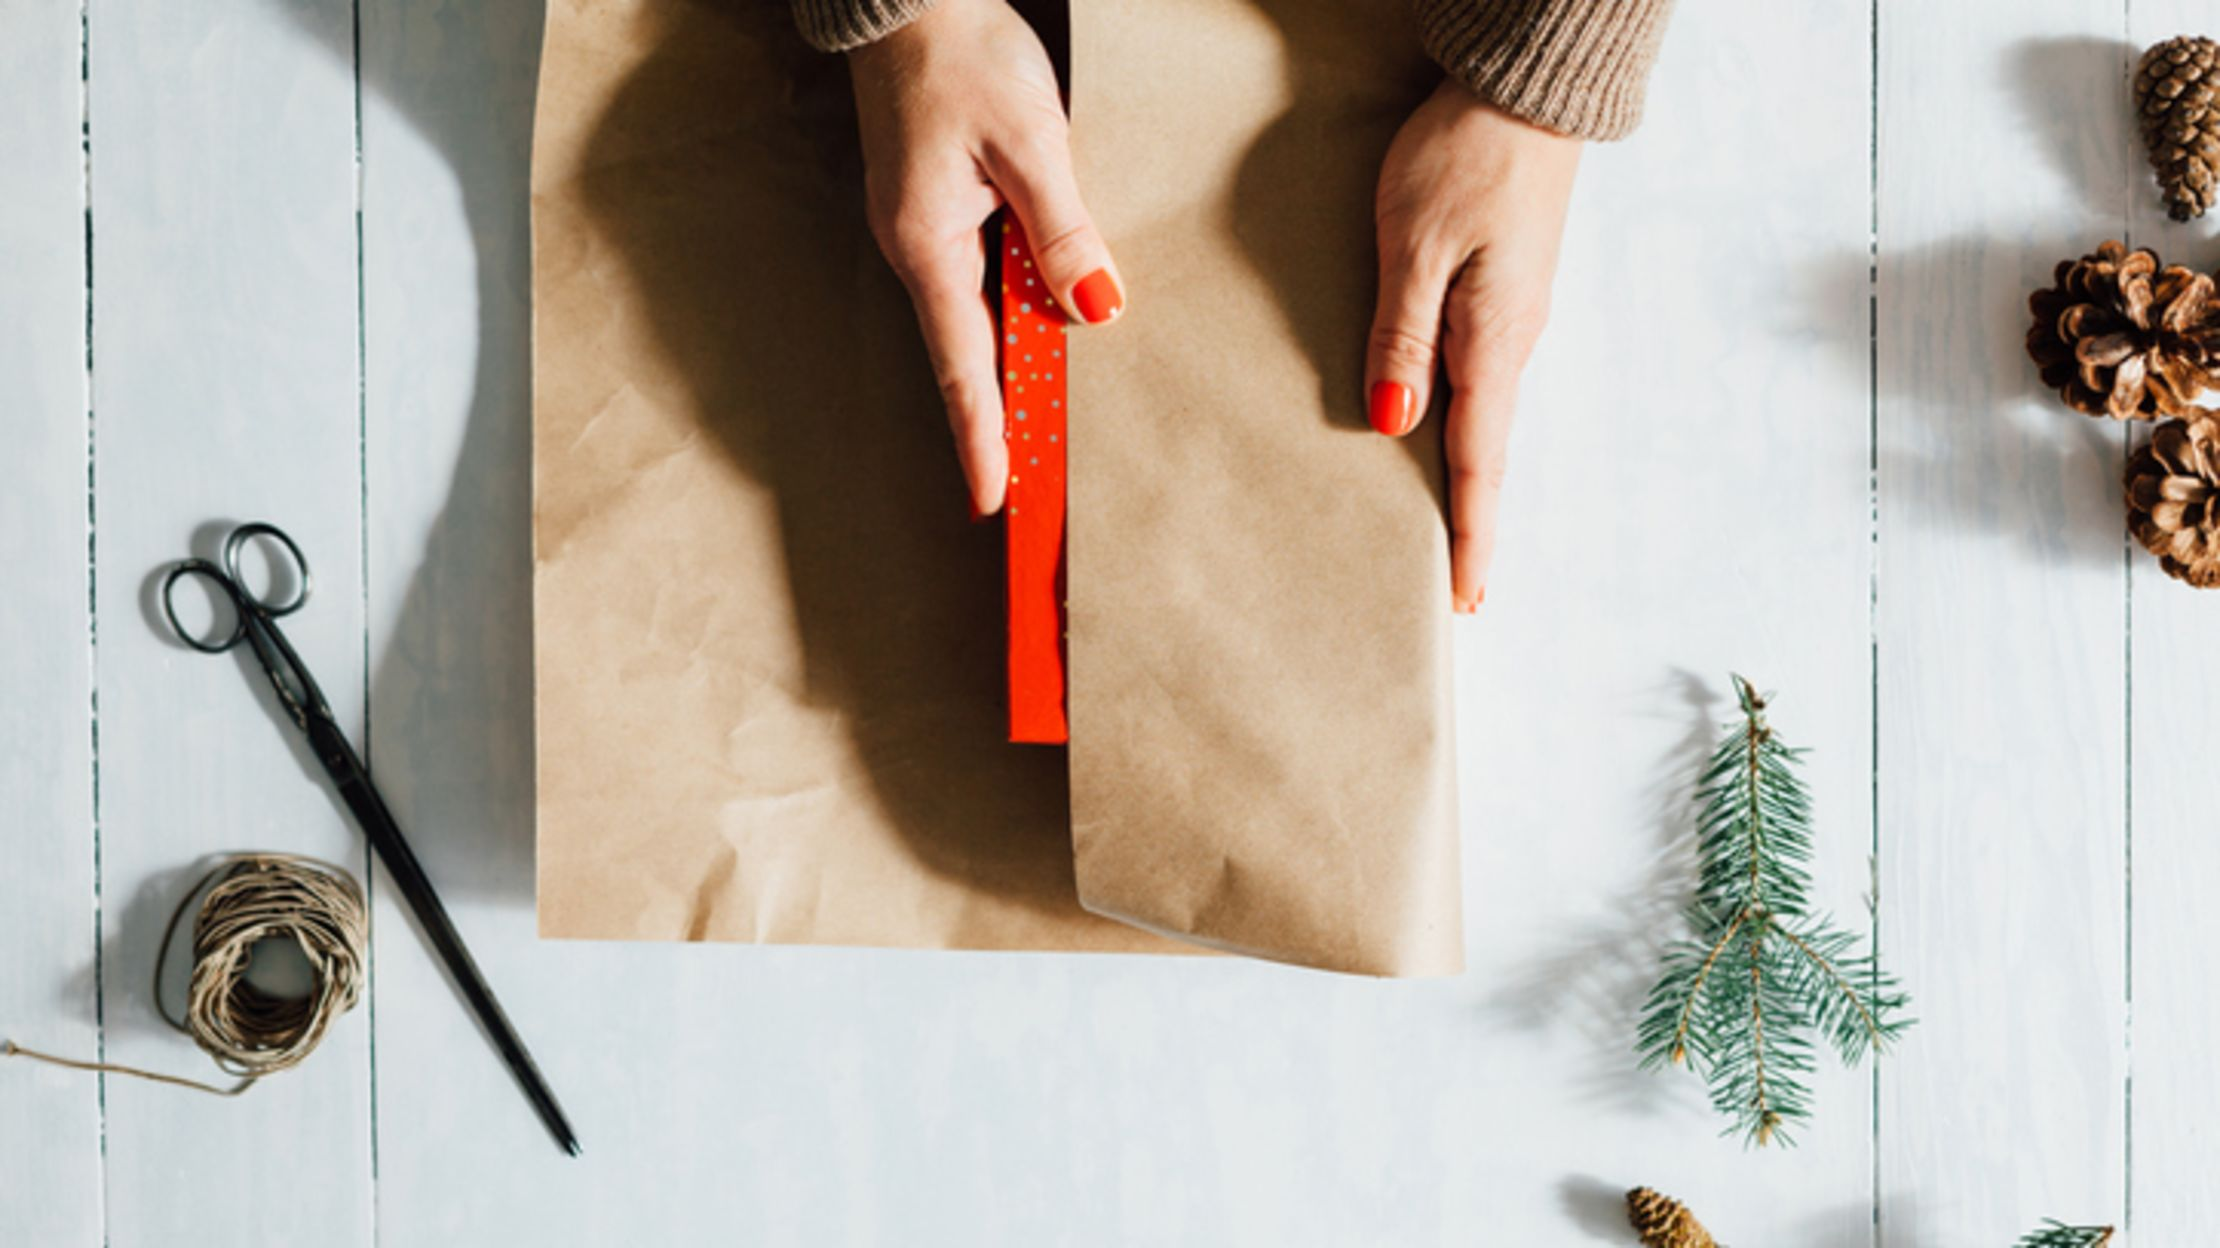 Wrap Presents in a Flash Using This Japanese Department Store Technique